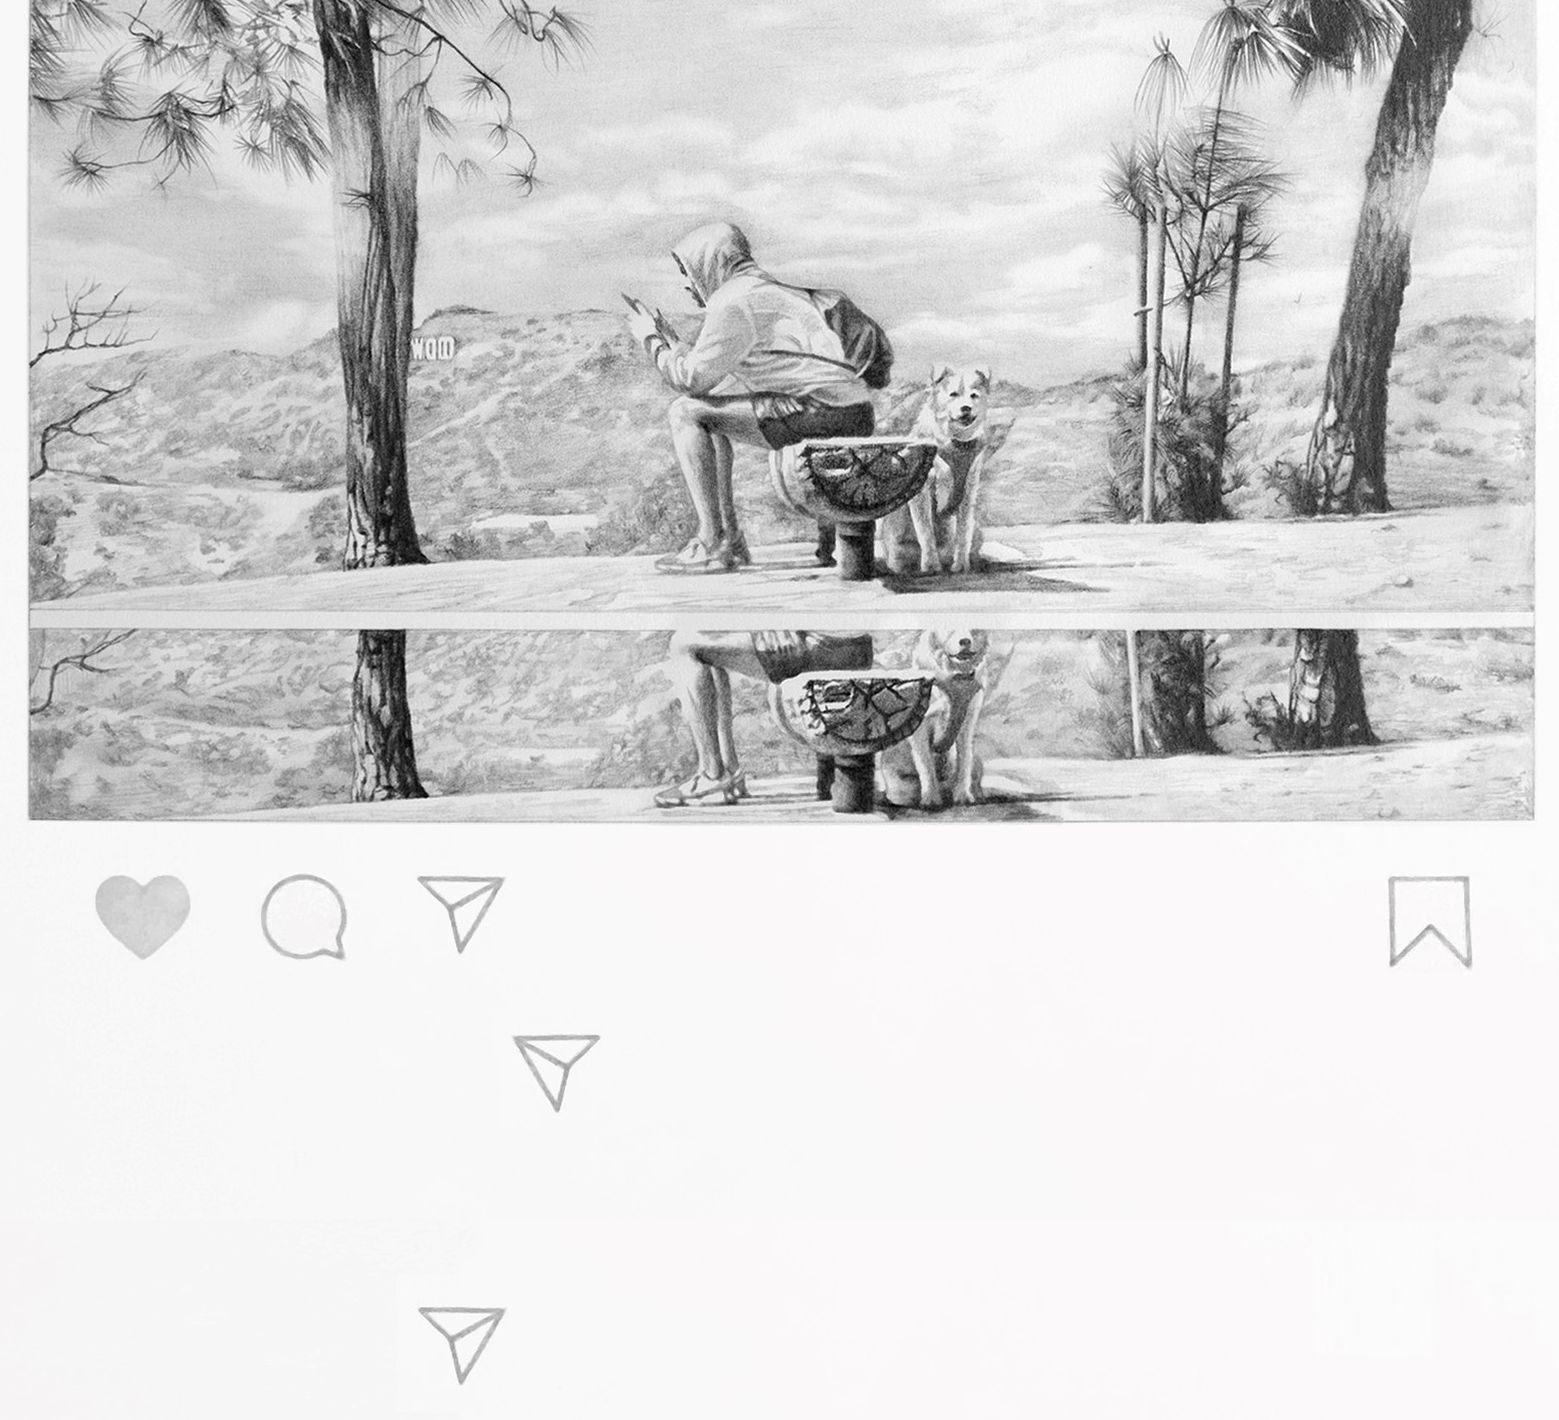 A detail view of a drawing based on an Instagram post that shows a man sitting on a bench and looking at his phone with a dog nearby